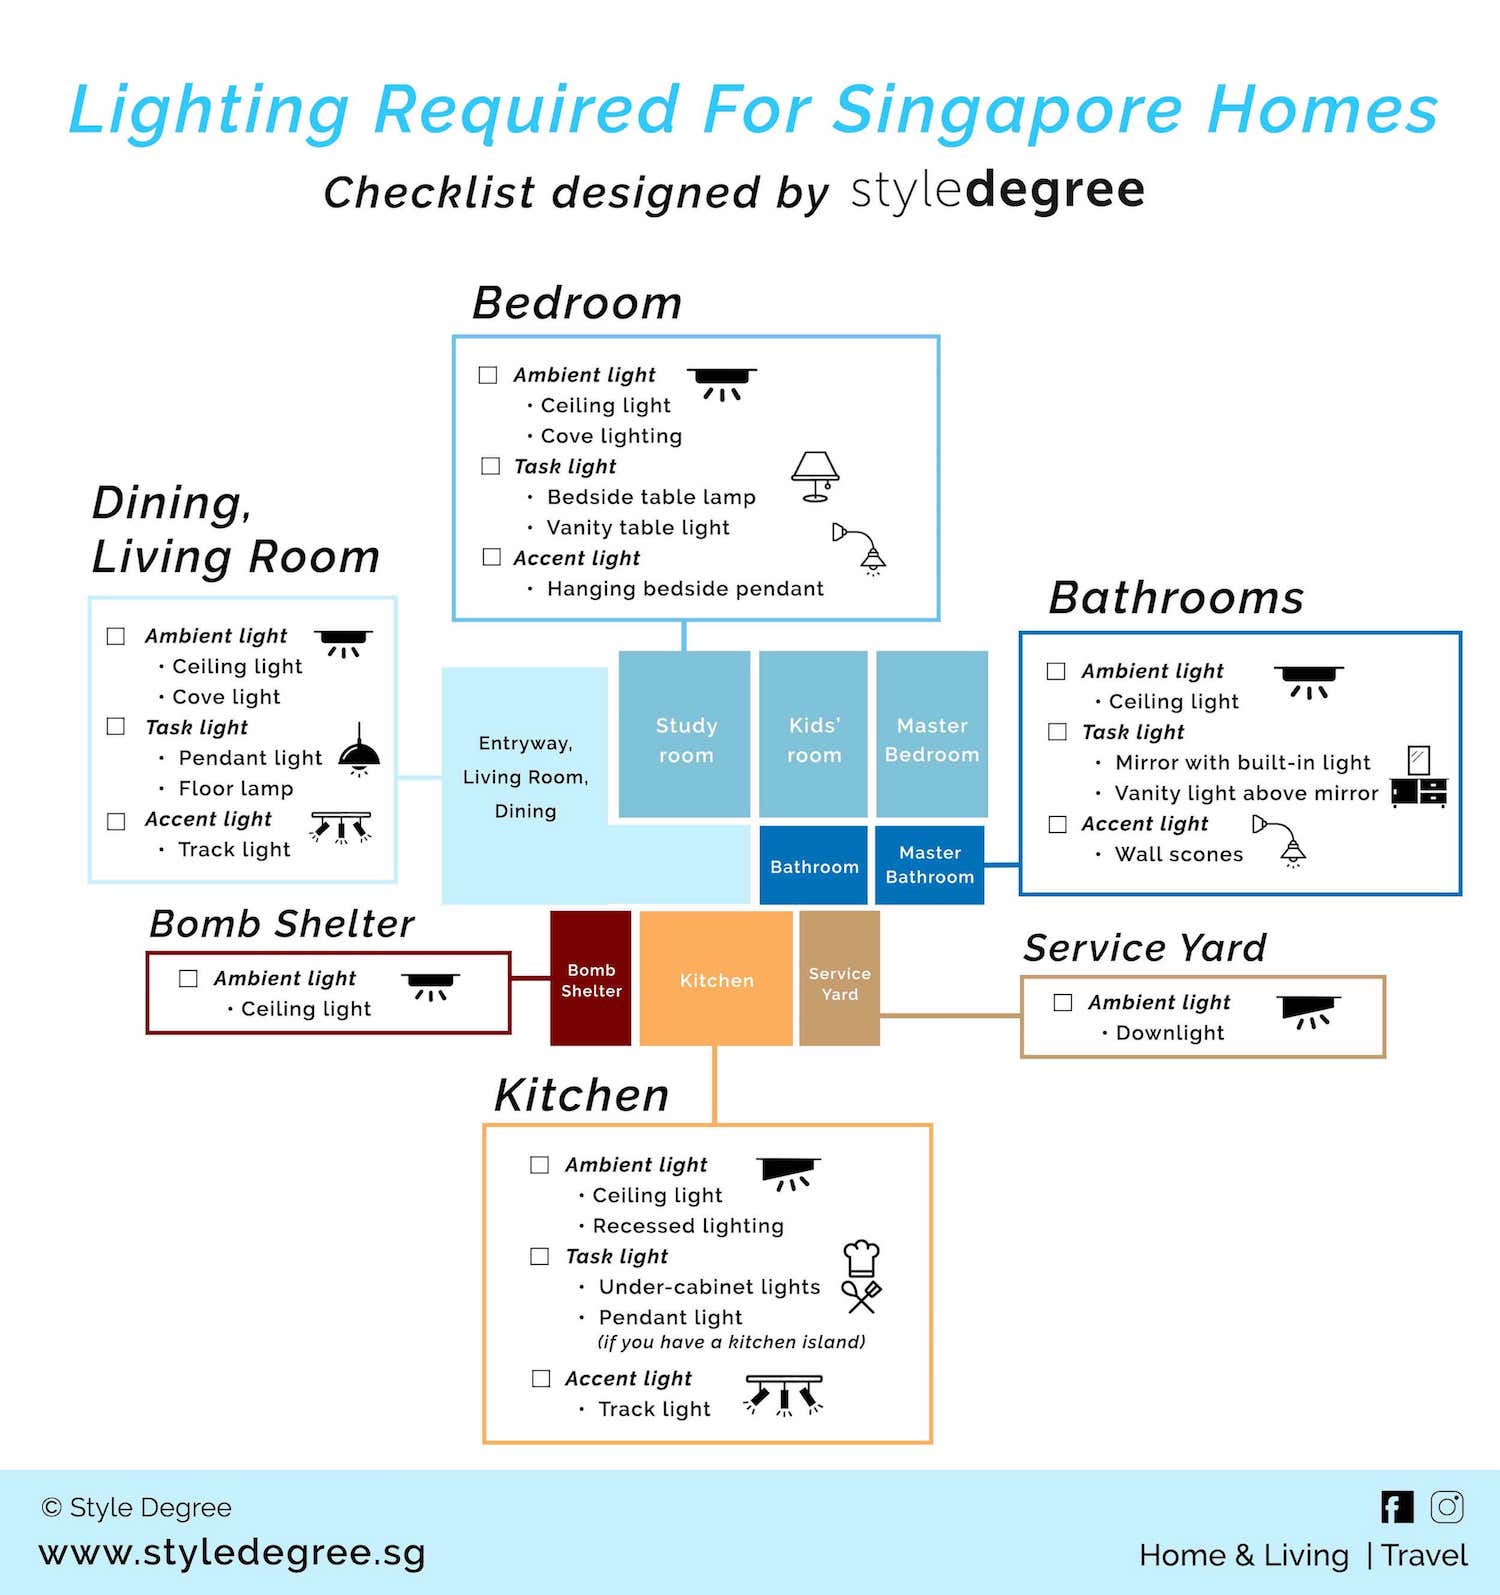 Lighting Required For Singapore HDB Homes Checklist - StyleMag